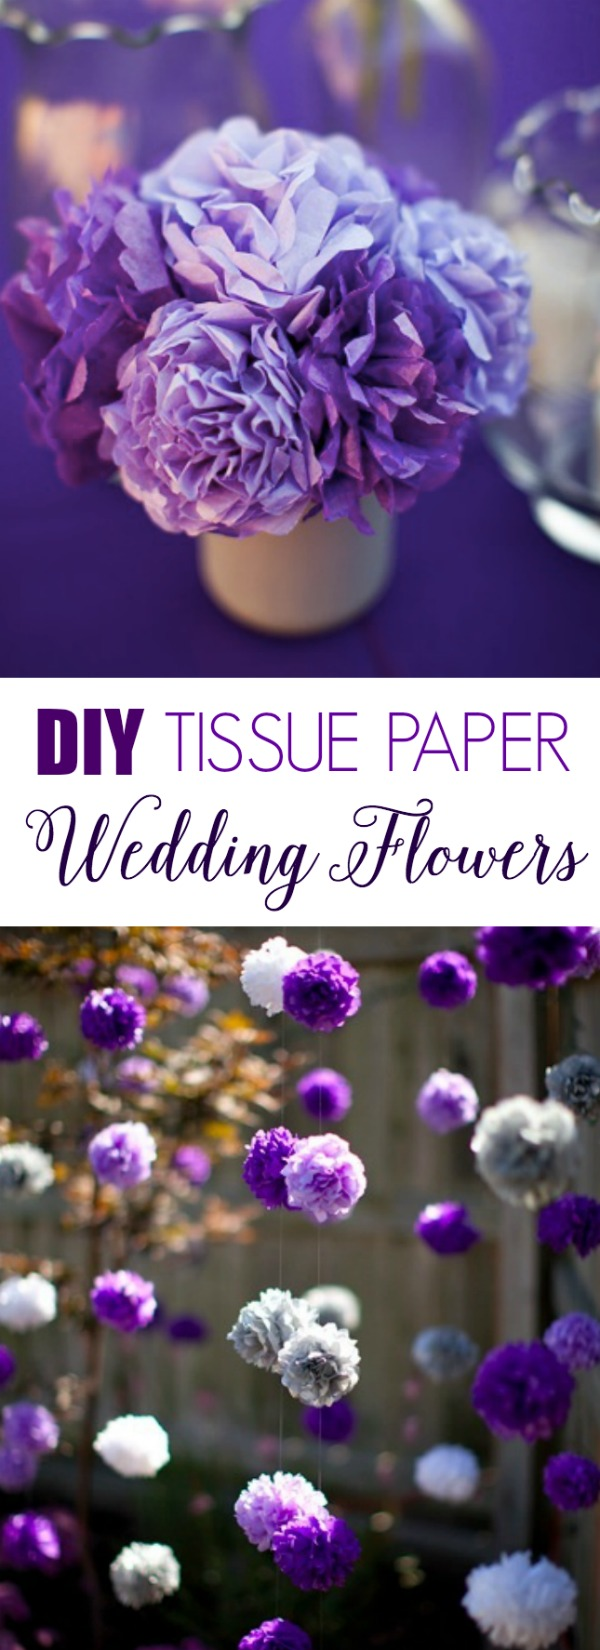 Diy tissue paper flowers mid south bride diy tissue paper flowers mightylinksfo